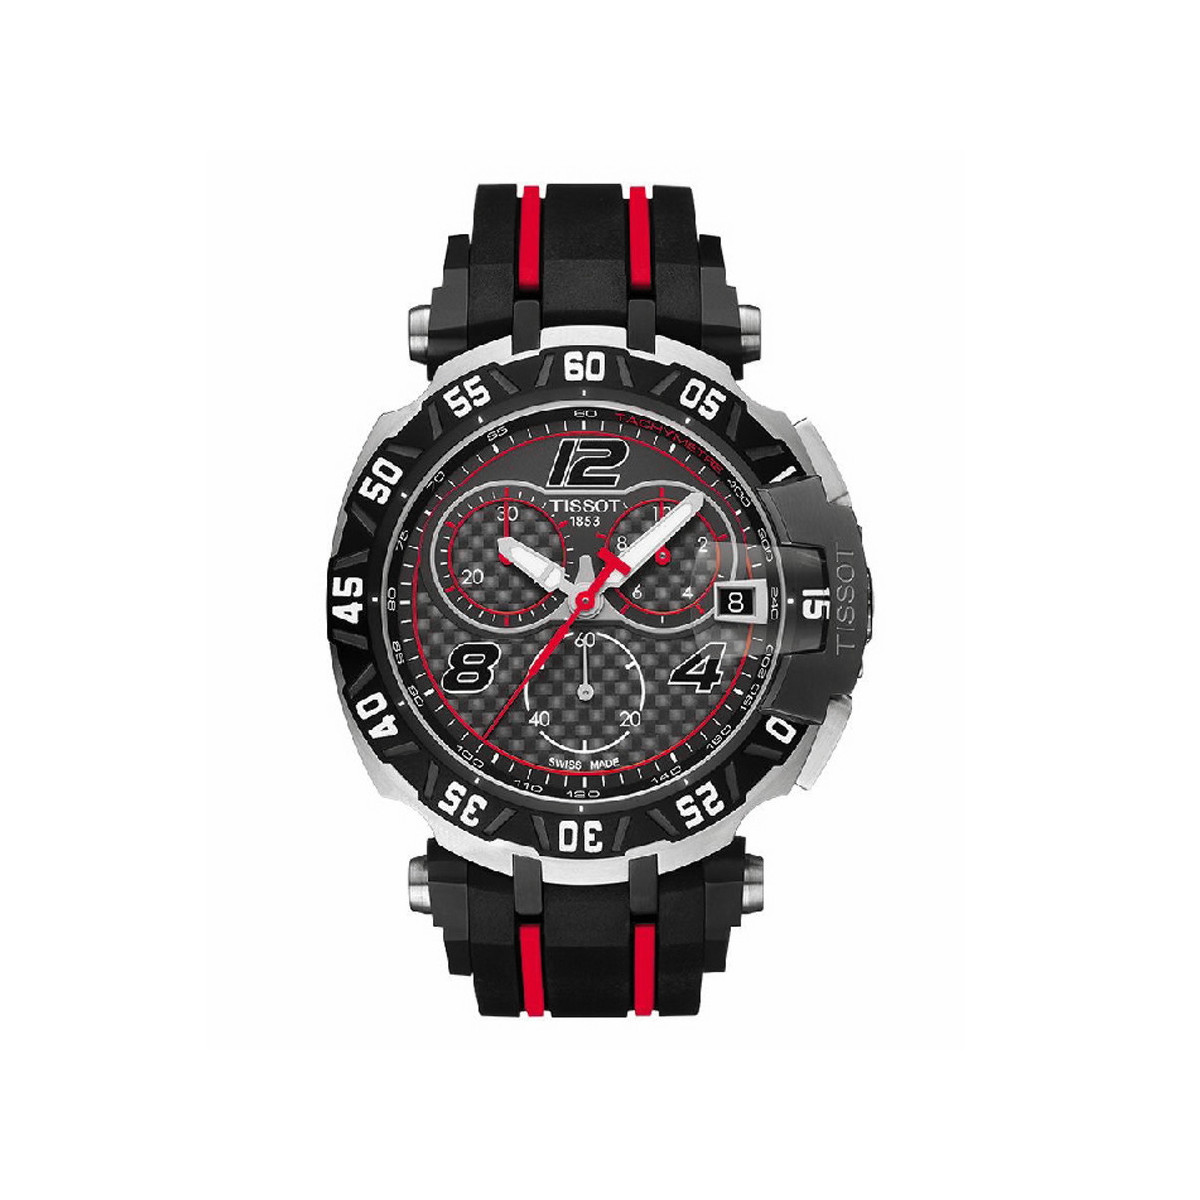 TISSOT T-RACE MOTO GP2016 LIMITED EDITION WATCH